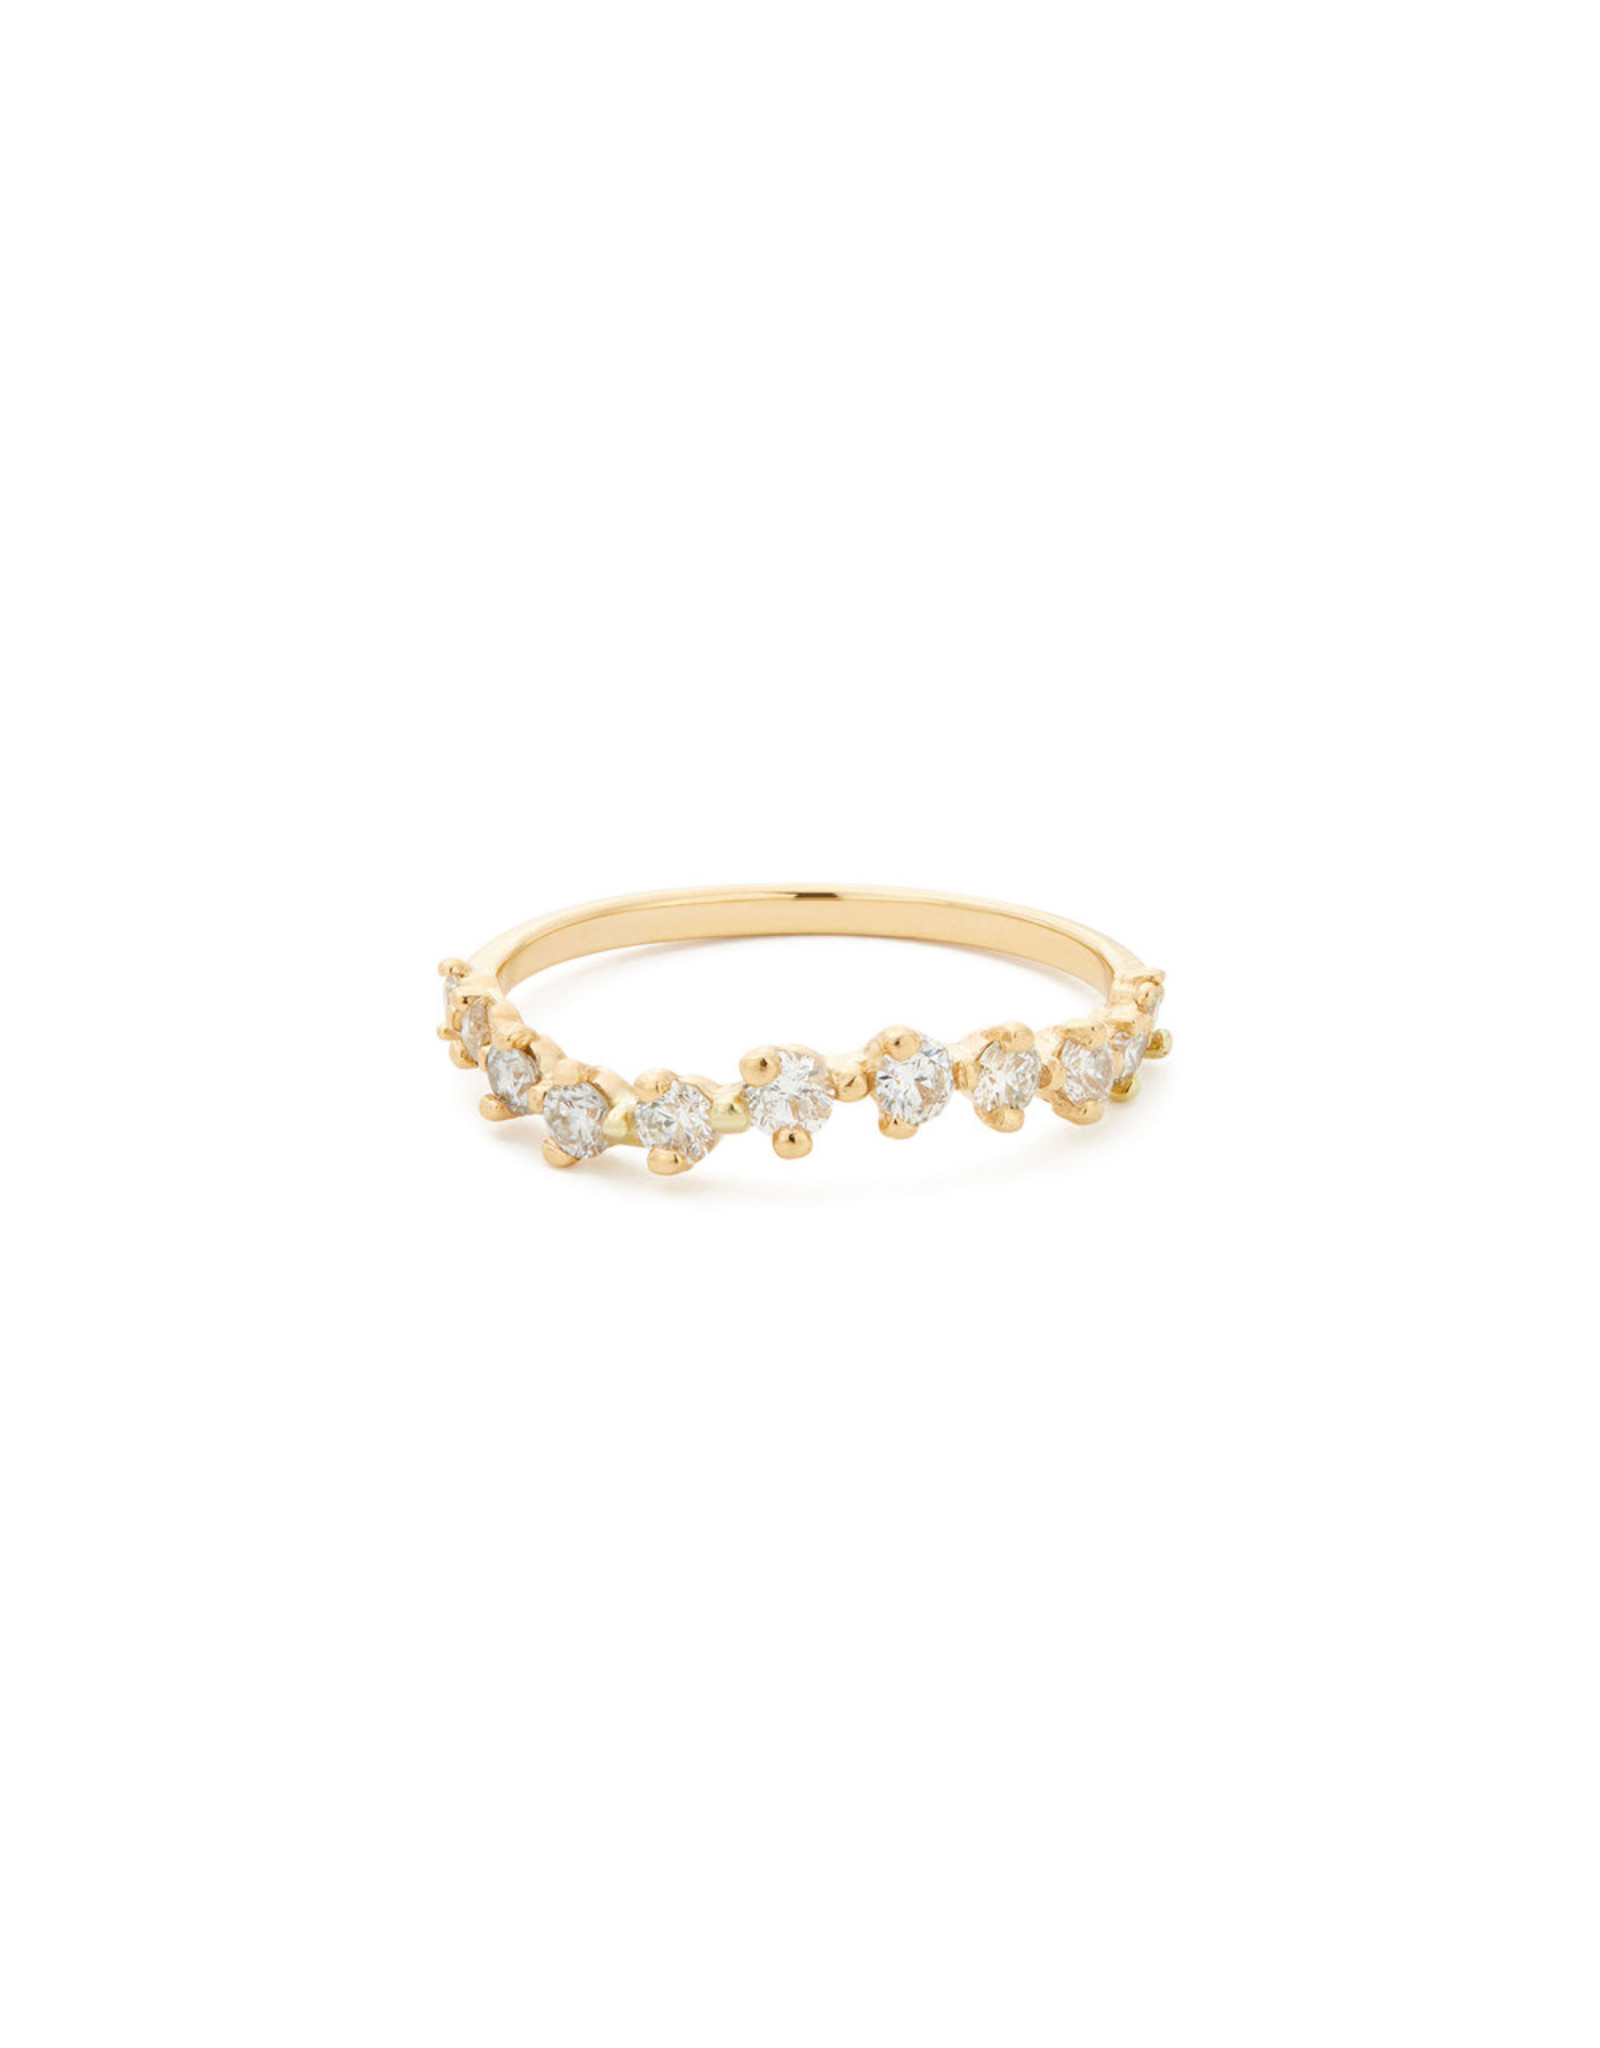 Sophie Ratner Sophie Ratner Half Band Diamond Swell Ring - Yellow Gold / White Diamonds (Size: 7)